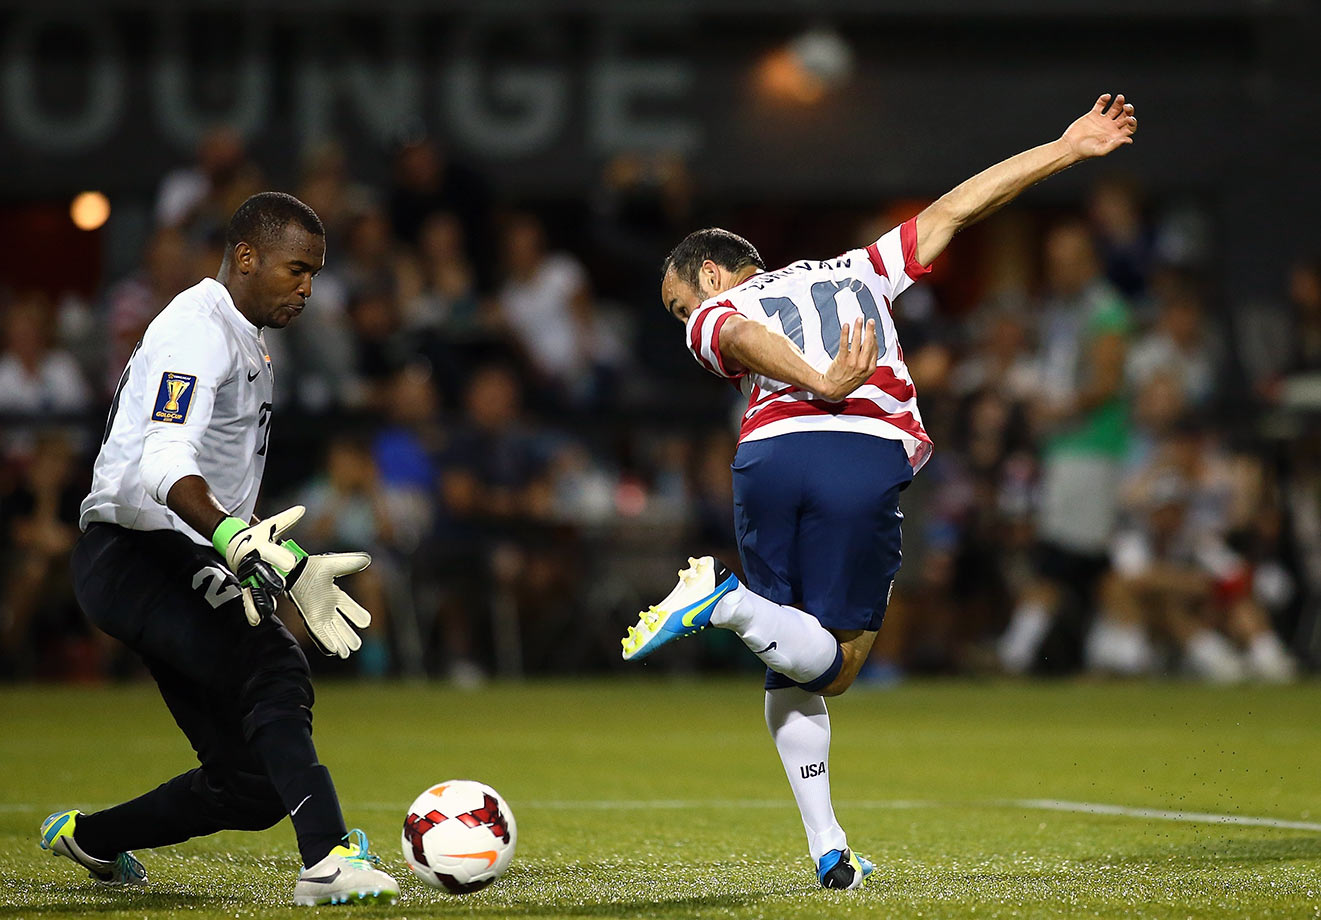 Landon Donovan attempts a back-heeled shot against Woodrow West of Belize during the 2013 CONCACAF Gold Cup in Portland, Ore. Donovan finished with a goal and two assists — becoming the first U.S. player to record both 50 goals and 50 assists for his career — as the U.S. won easily, 6-1.